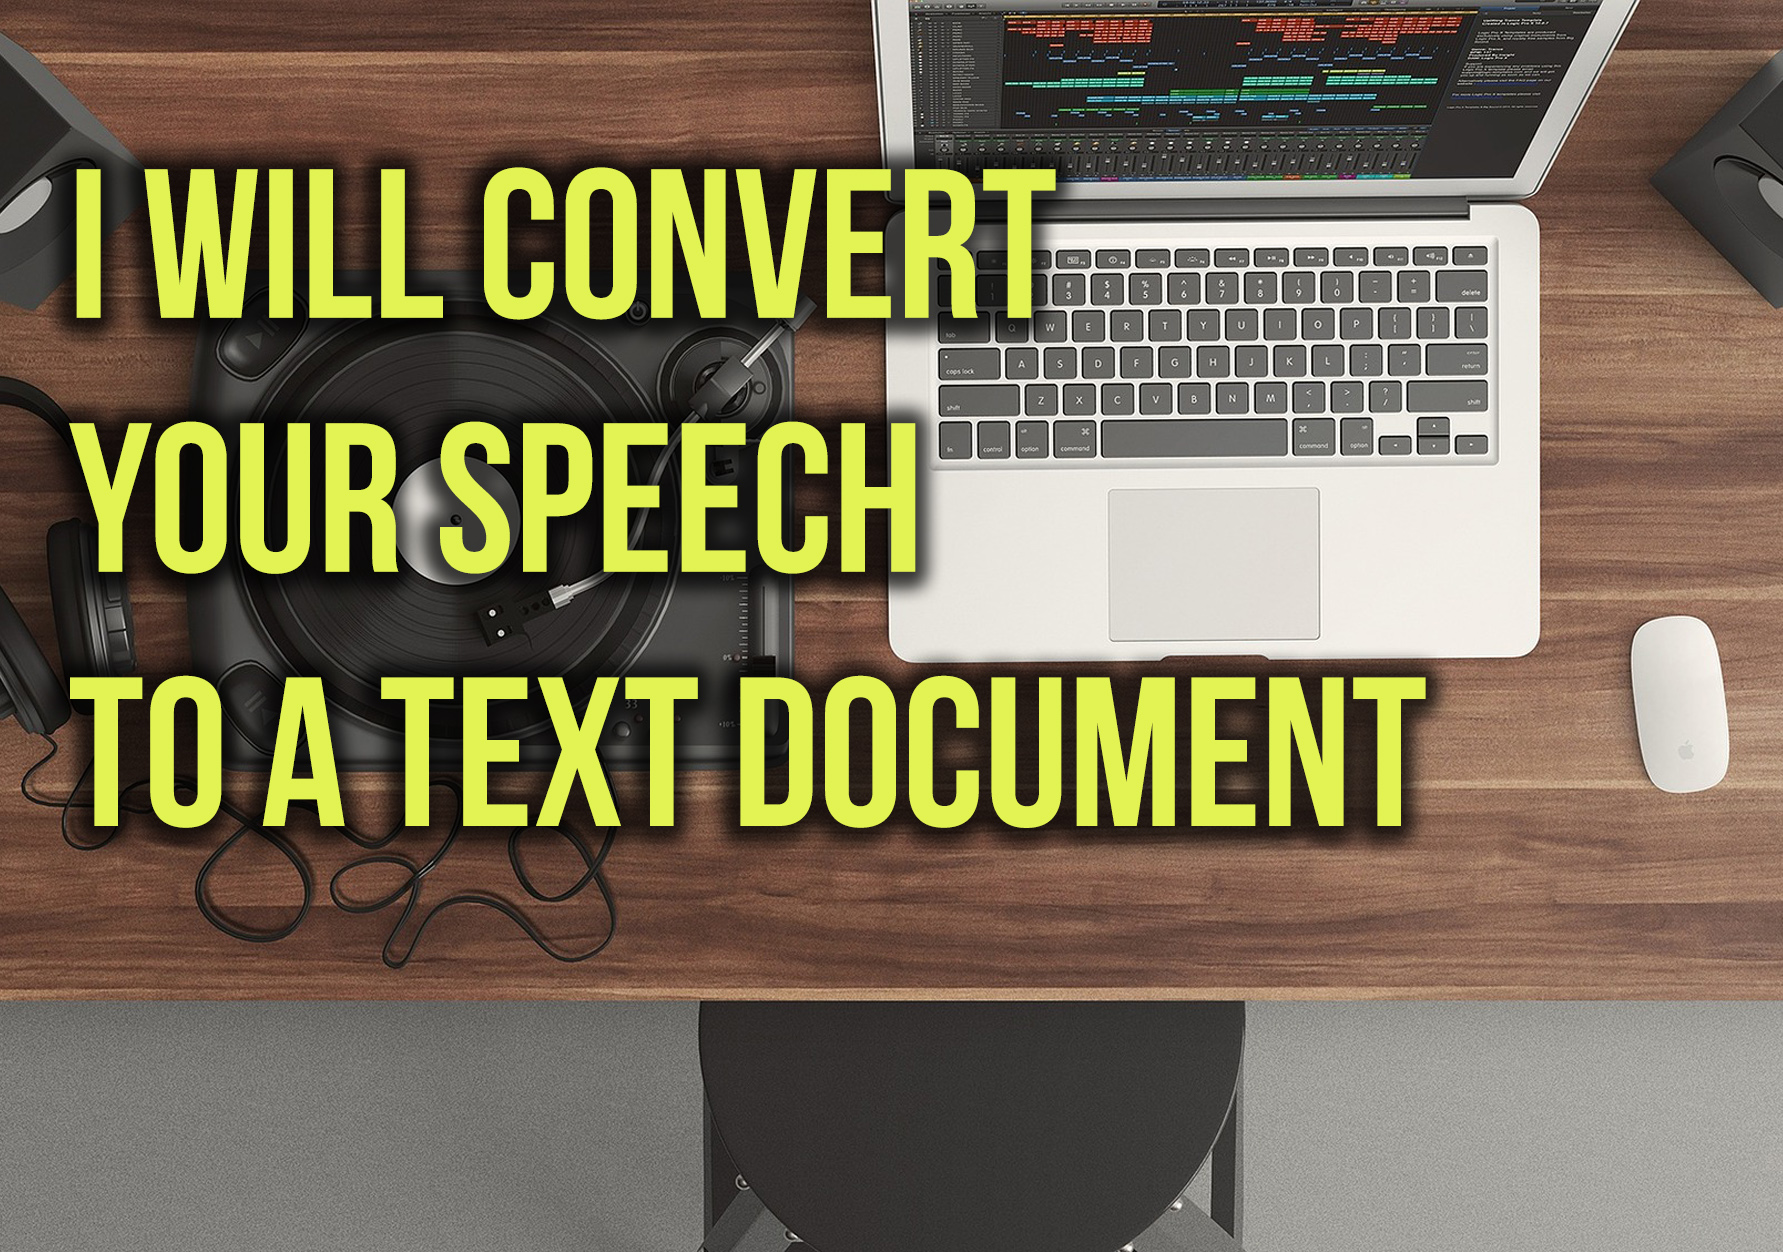 Will Convert Speech To Text